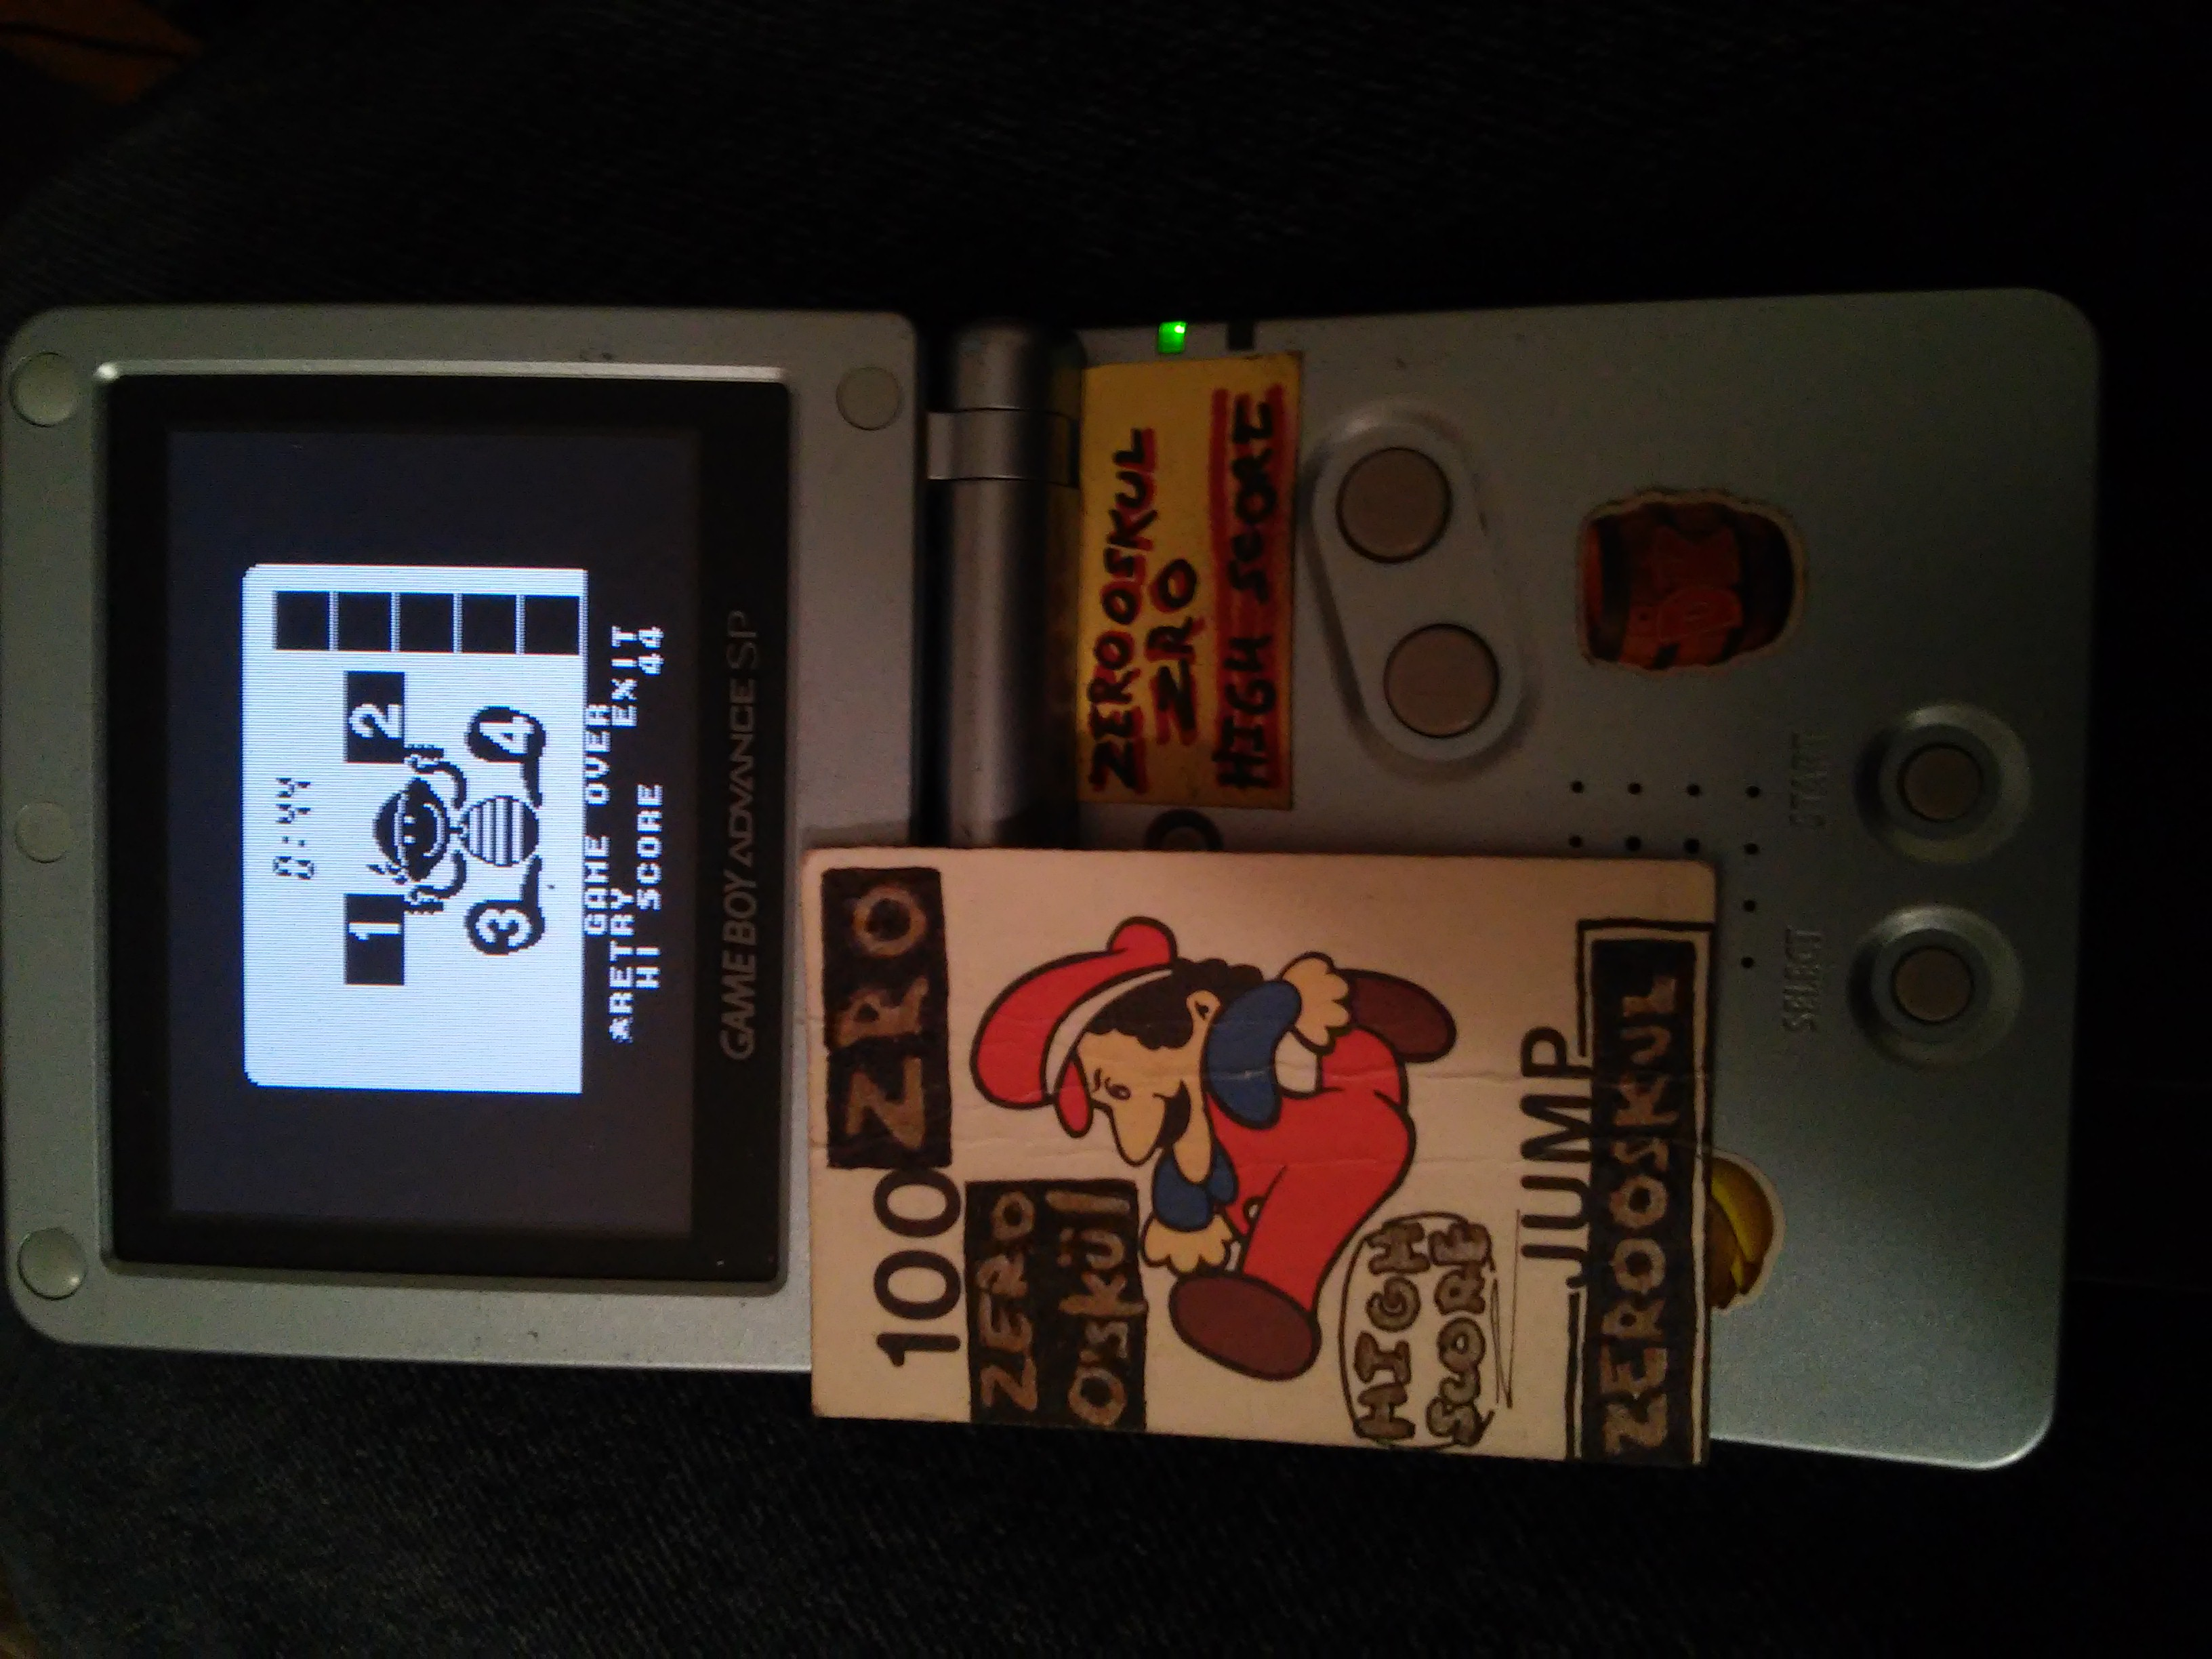 zerooskul: Game & Watch Gallery 3: Flagman [Classic: Game A] (Game Boy Color) 44 points on 2019-03-11 04:15:20